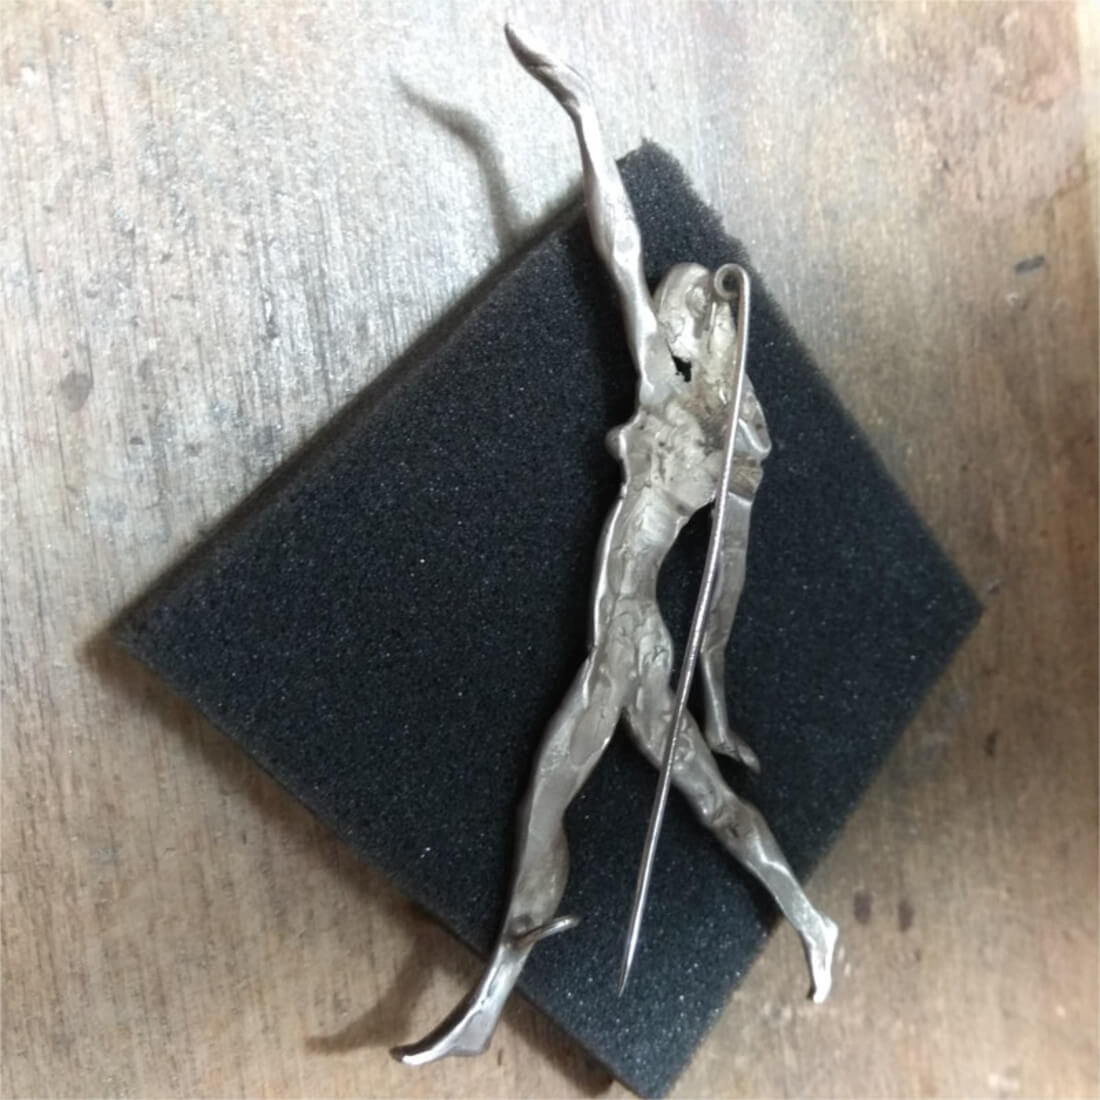 Sculpture in Jewelry - Brooch with Athlete, by Hovik Kasapyan